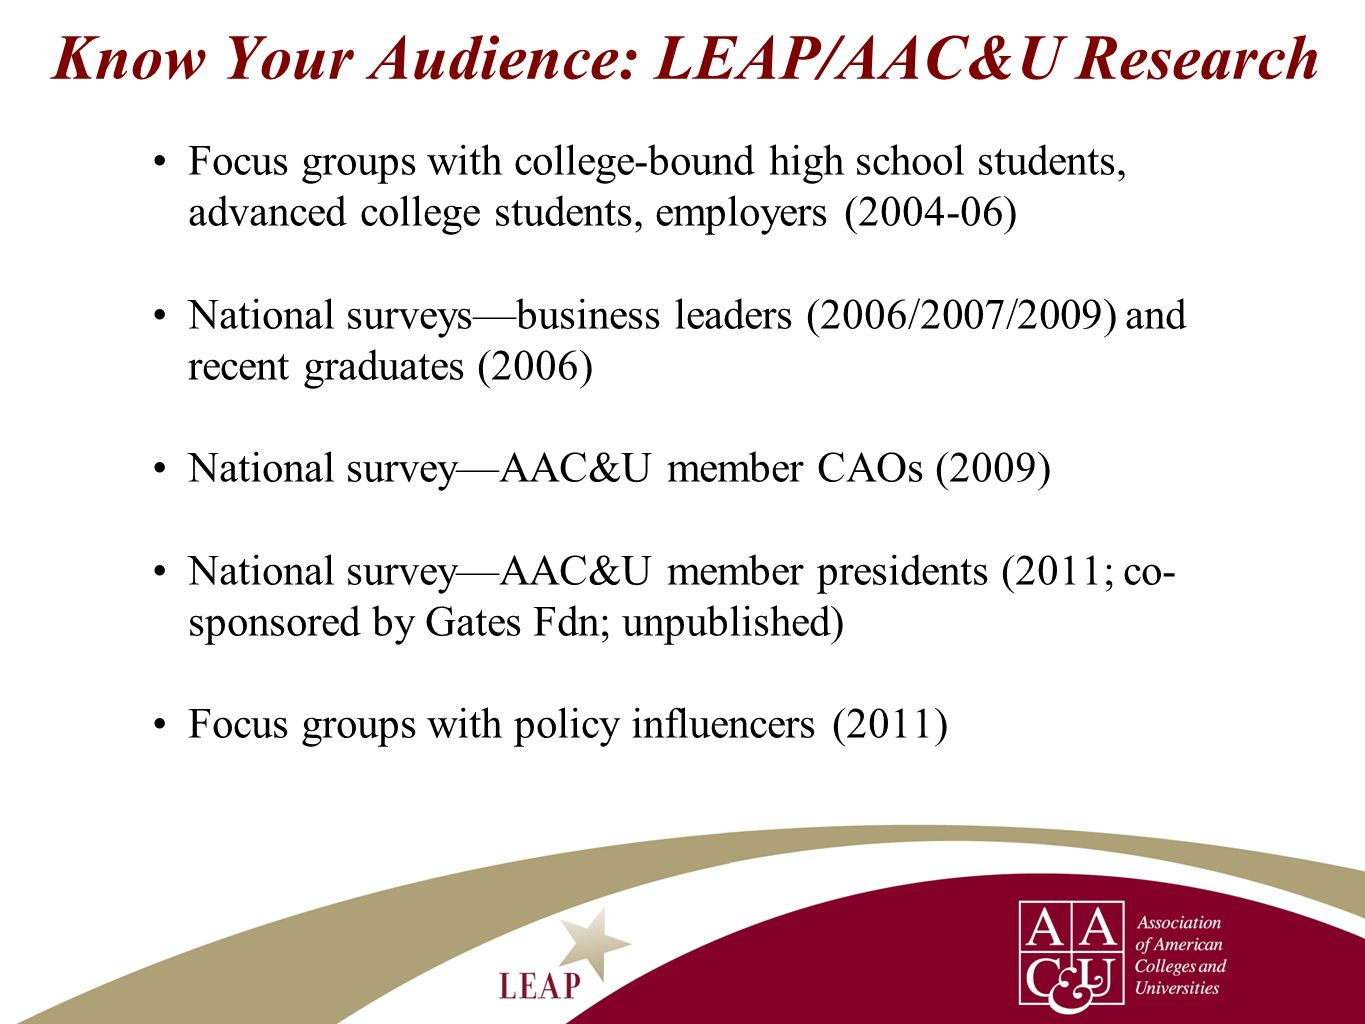 Know Your Audience: LEAP/AAC&U Research Focus groups with college-bound high school students, advanced college students, employers (2004-06) National